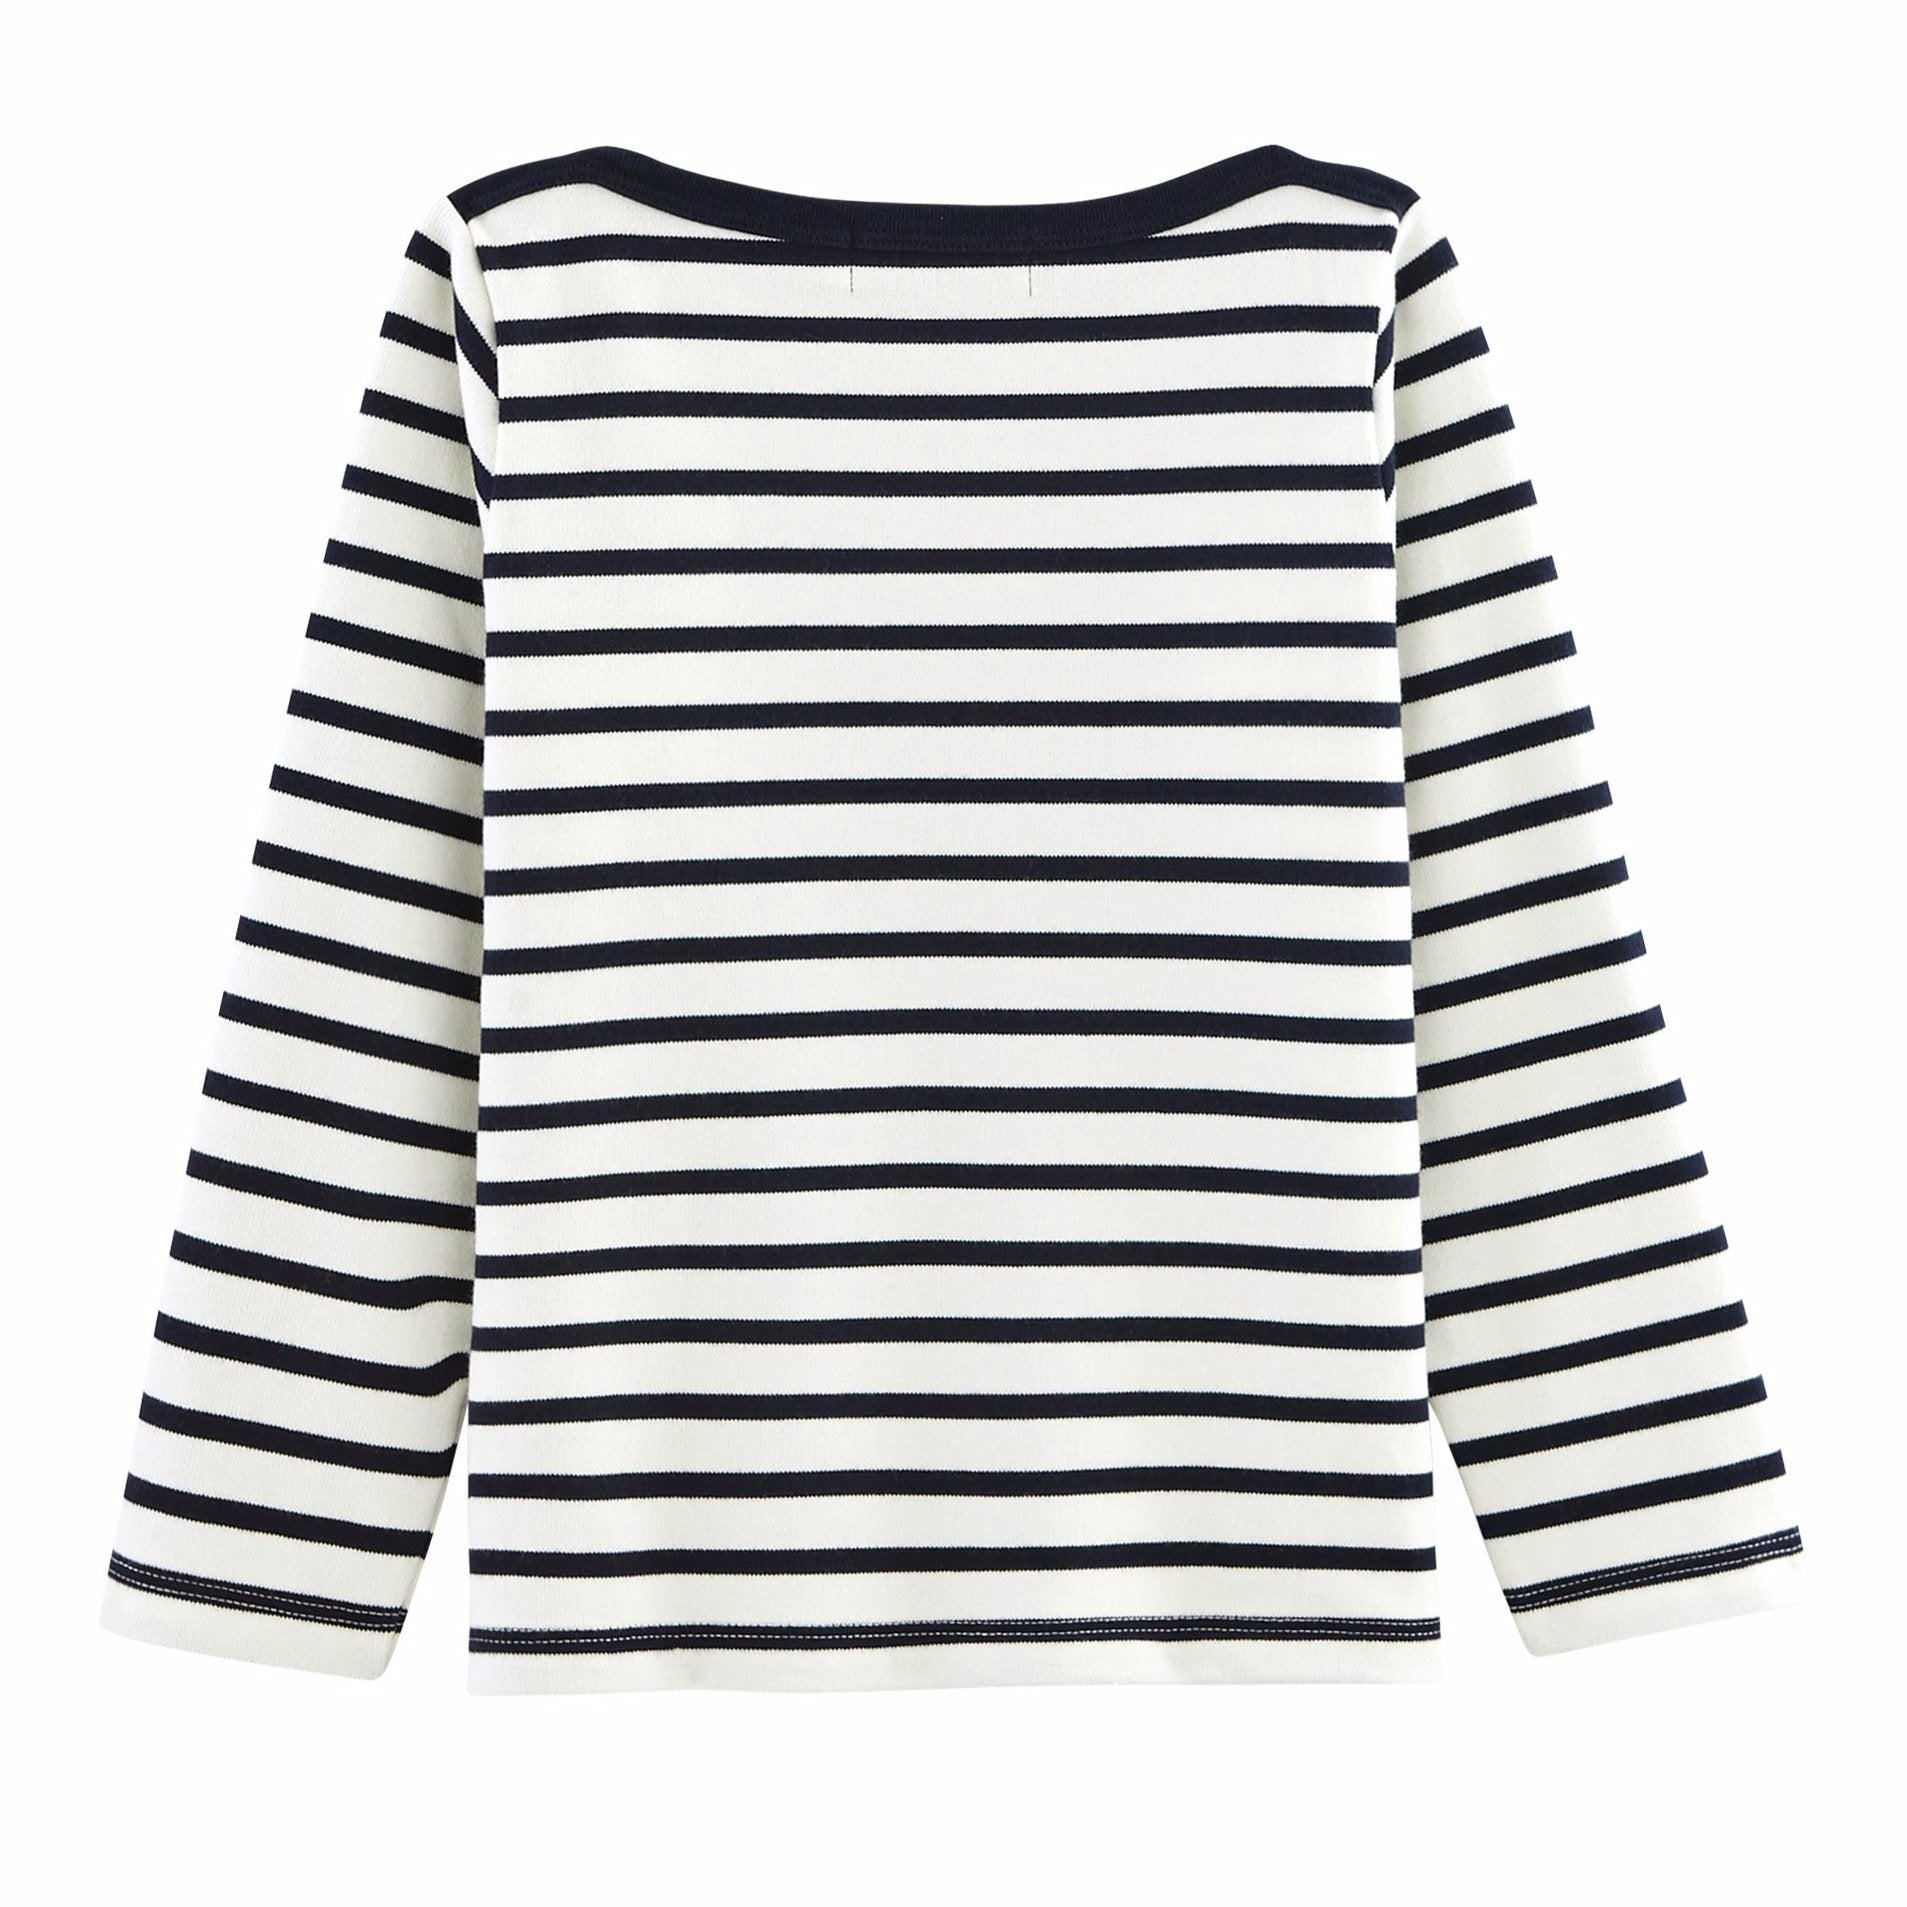 Petit Bateau - Bluse, Sailor Top (Unisex) - Coquille Beige / Smoking Blue